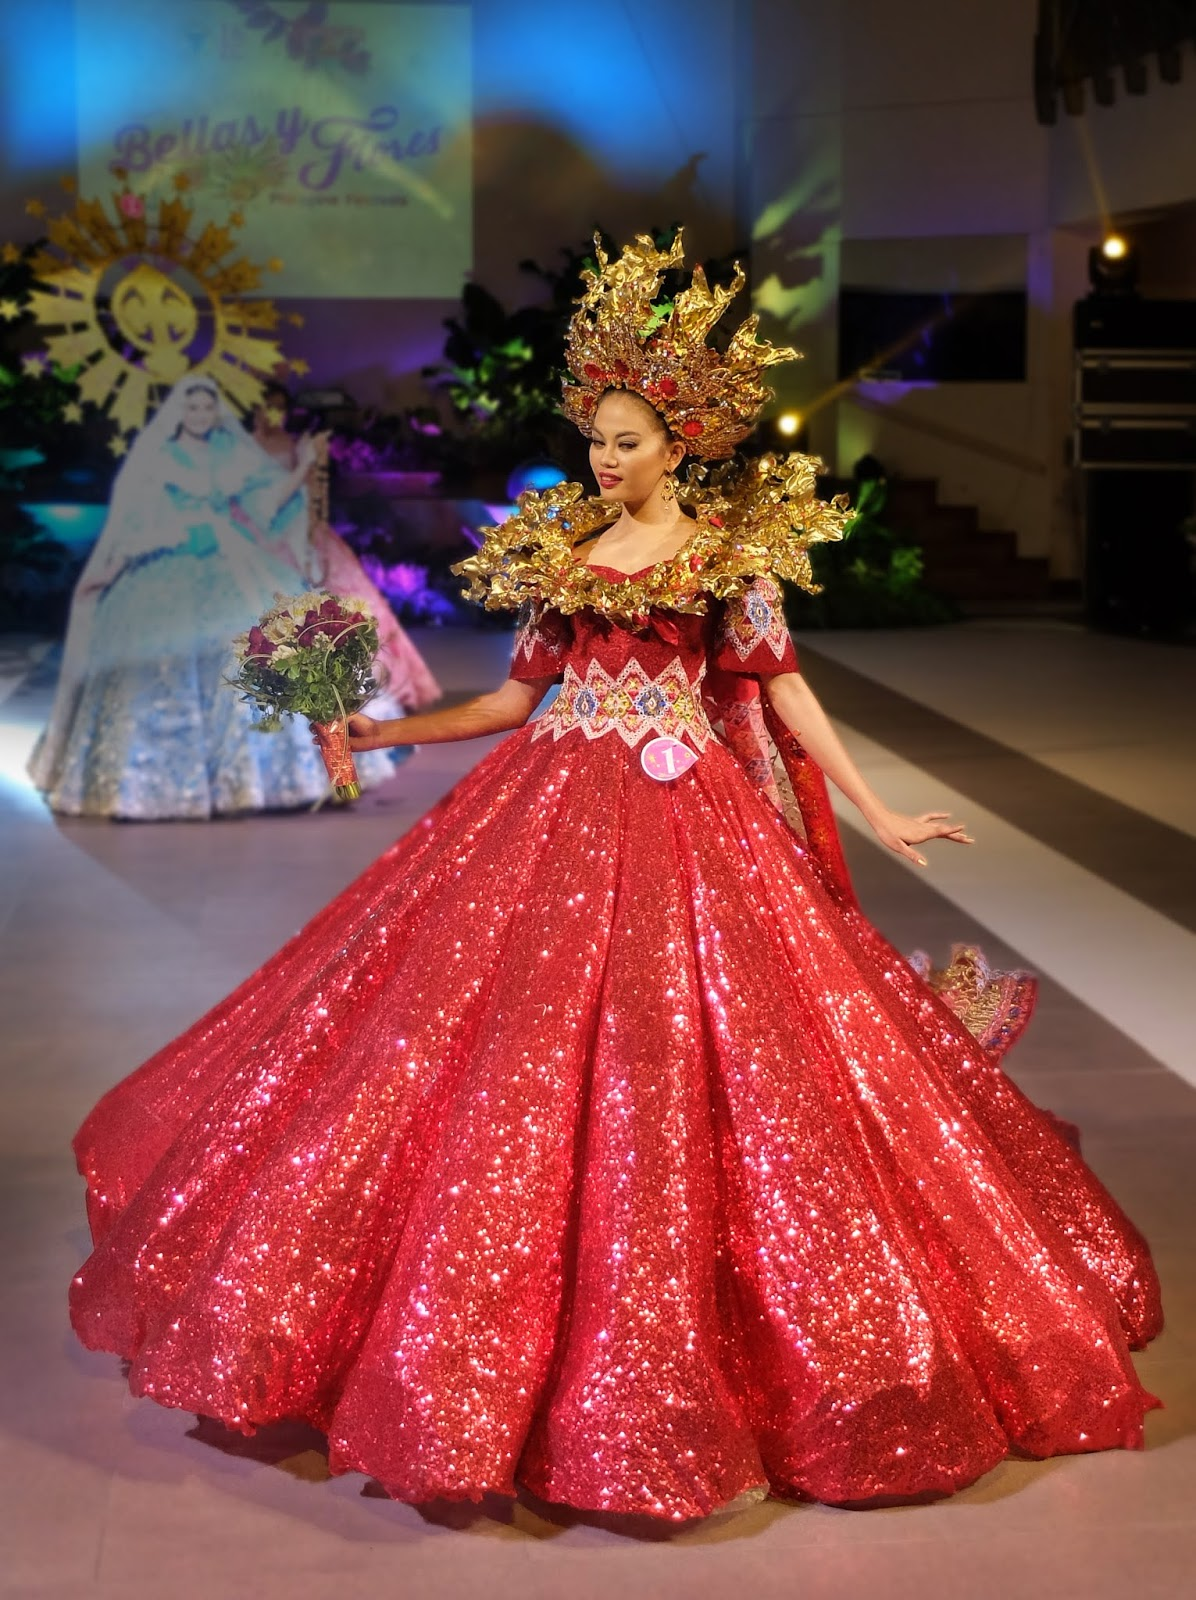 Lami-Lamihan Festival of Lamitan, Basilan by Pio Hilario Festival de las Bellas y Flores Gown Competition National Costume